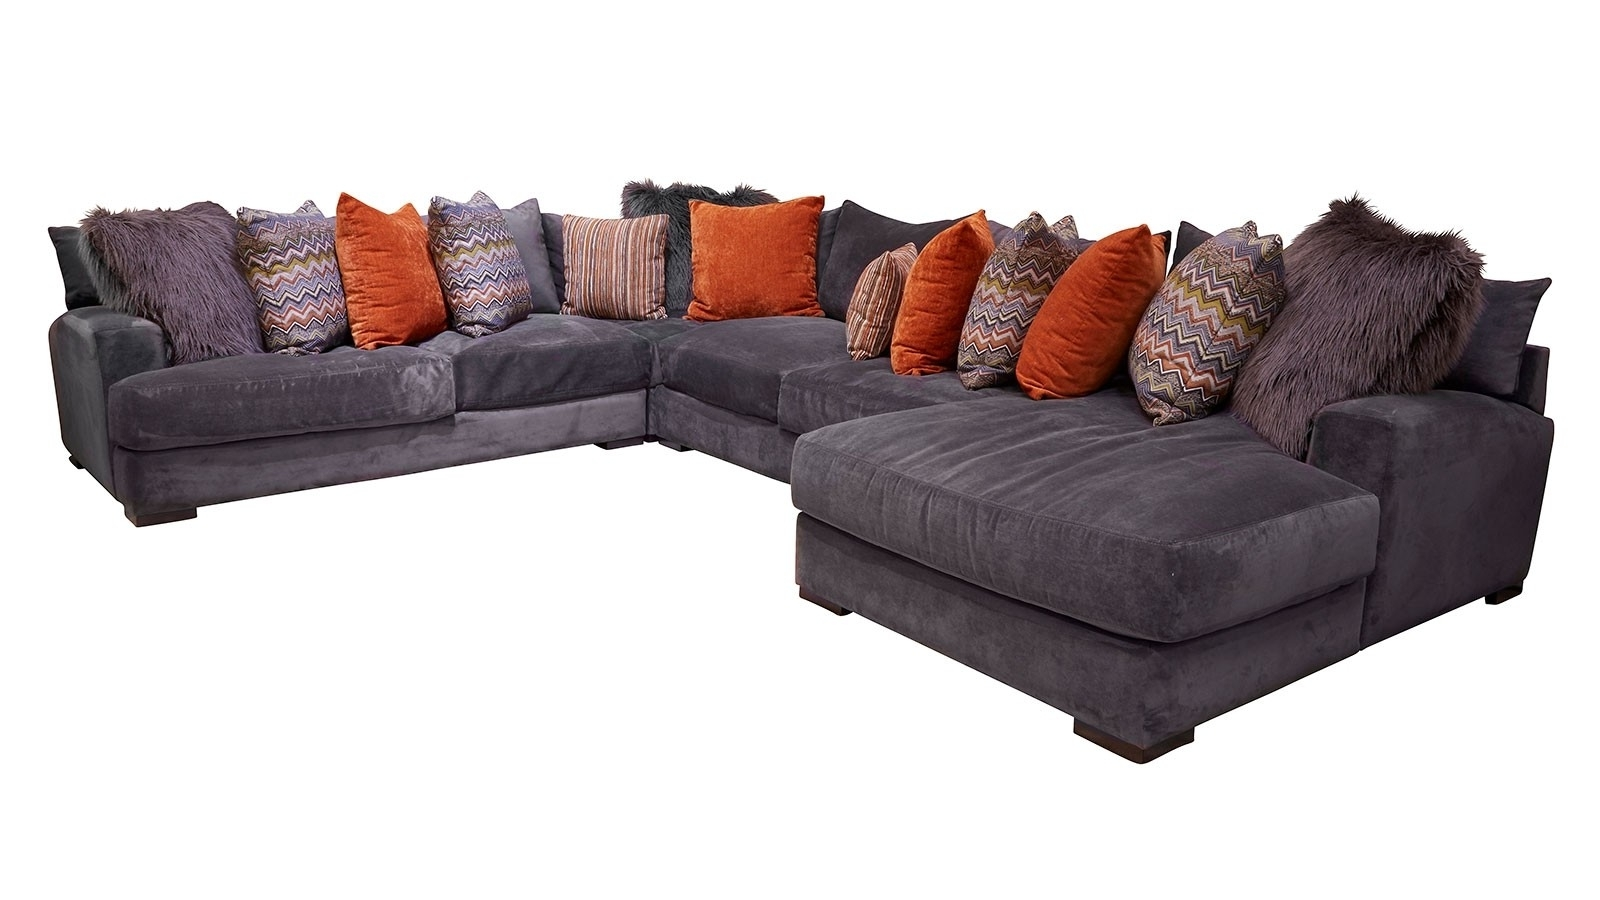 Gallery Furniture With Regard To Newest Gallery Furniture Sectional Sofas (View 20 of 20)